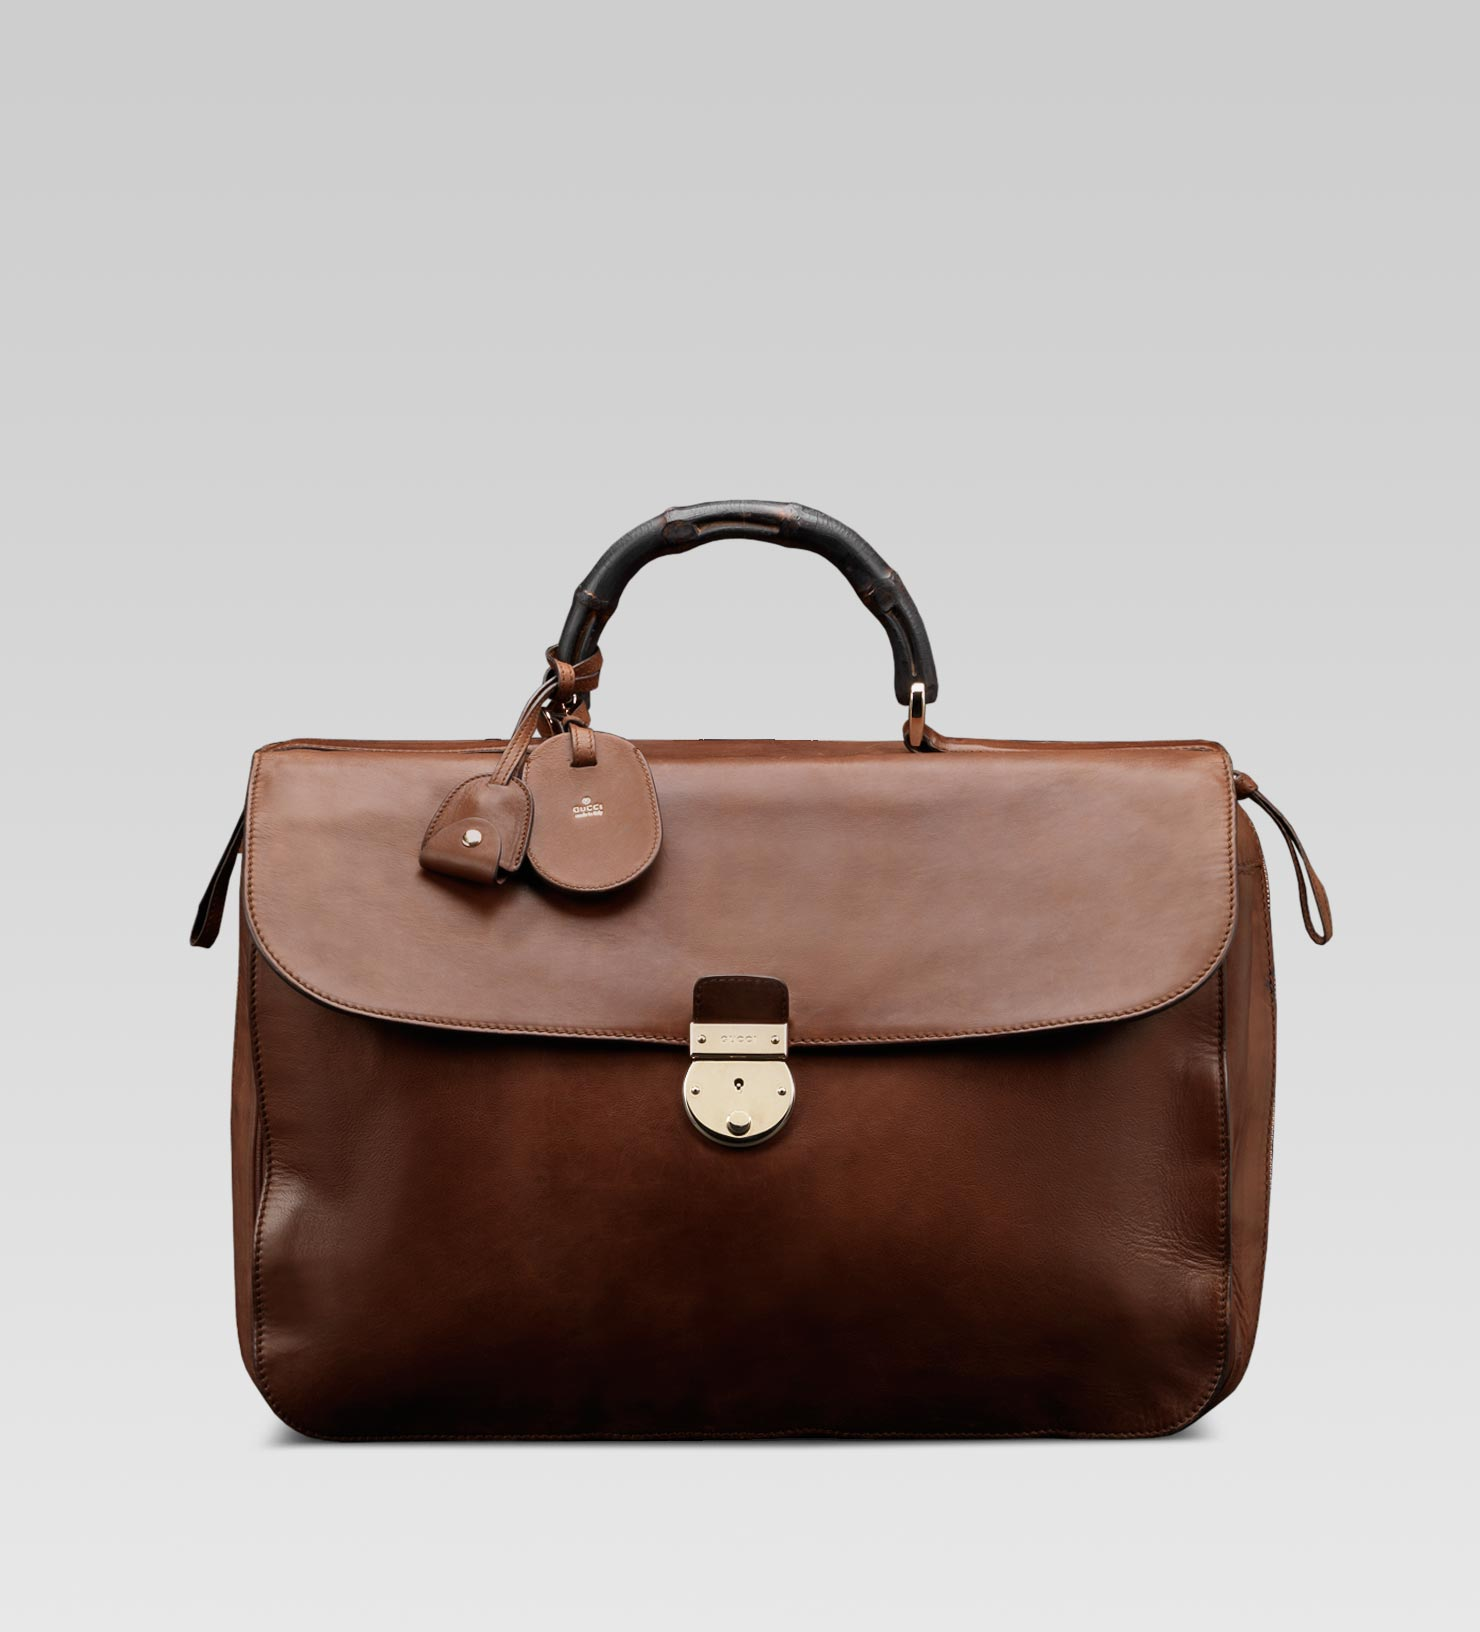 Lyst - Gucci Briefcase in Brown for Men f93936d8c3d38